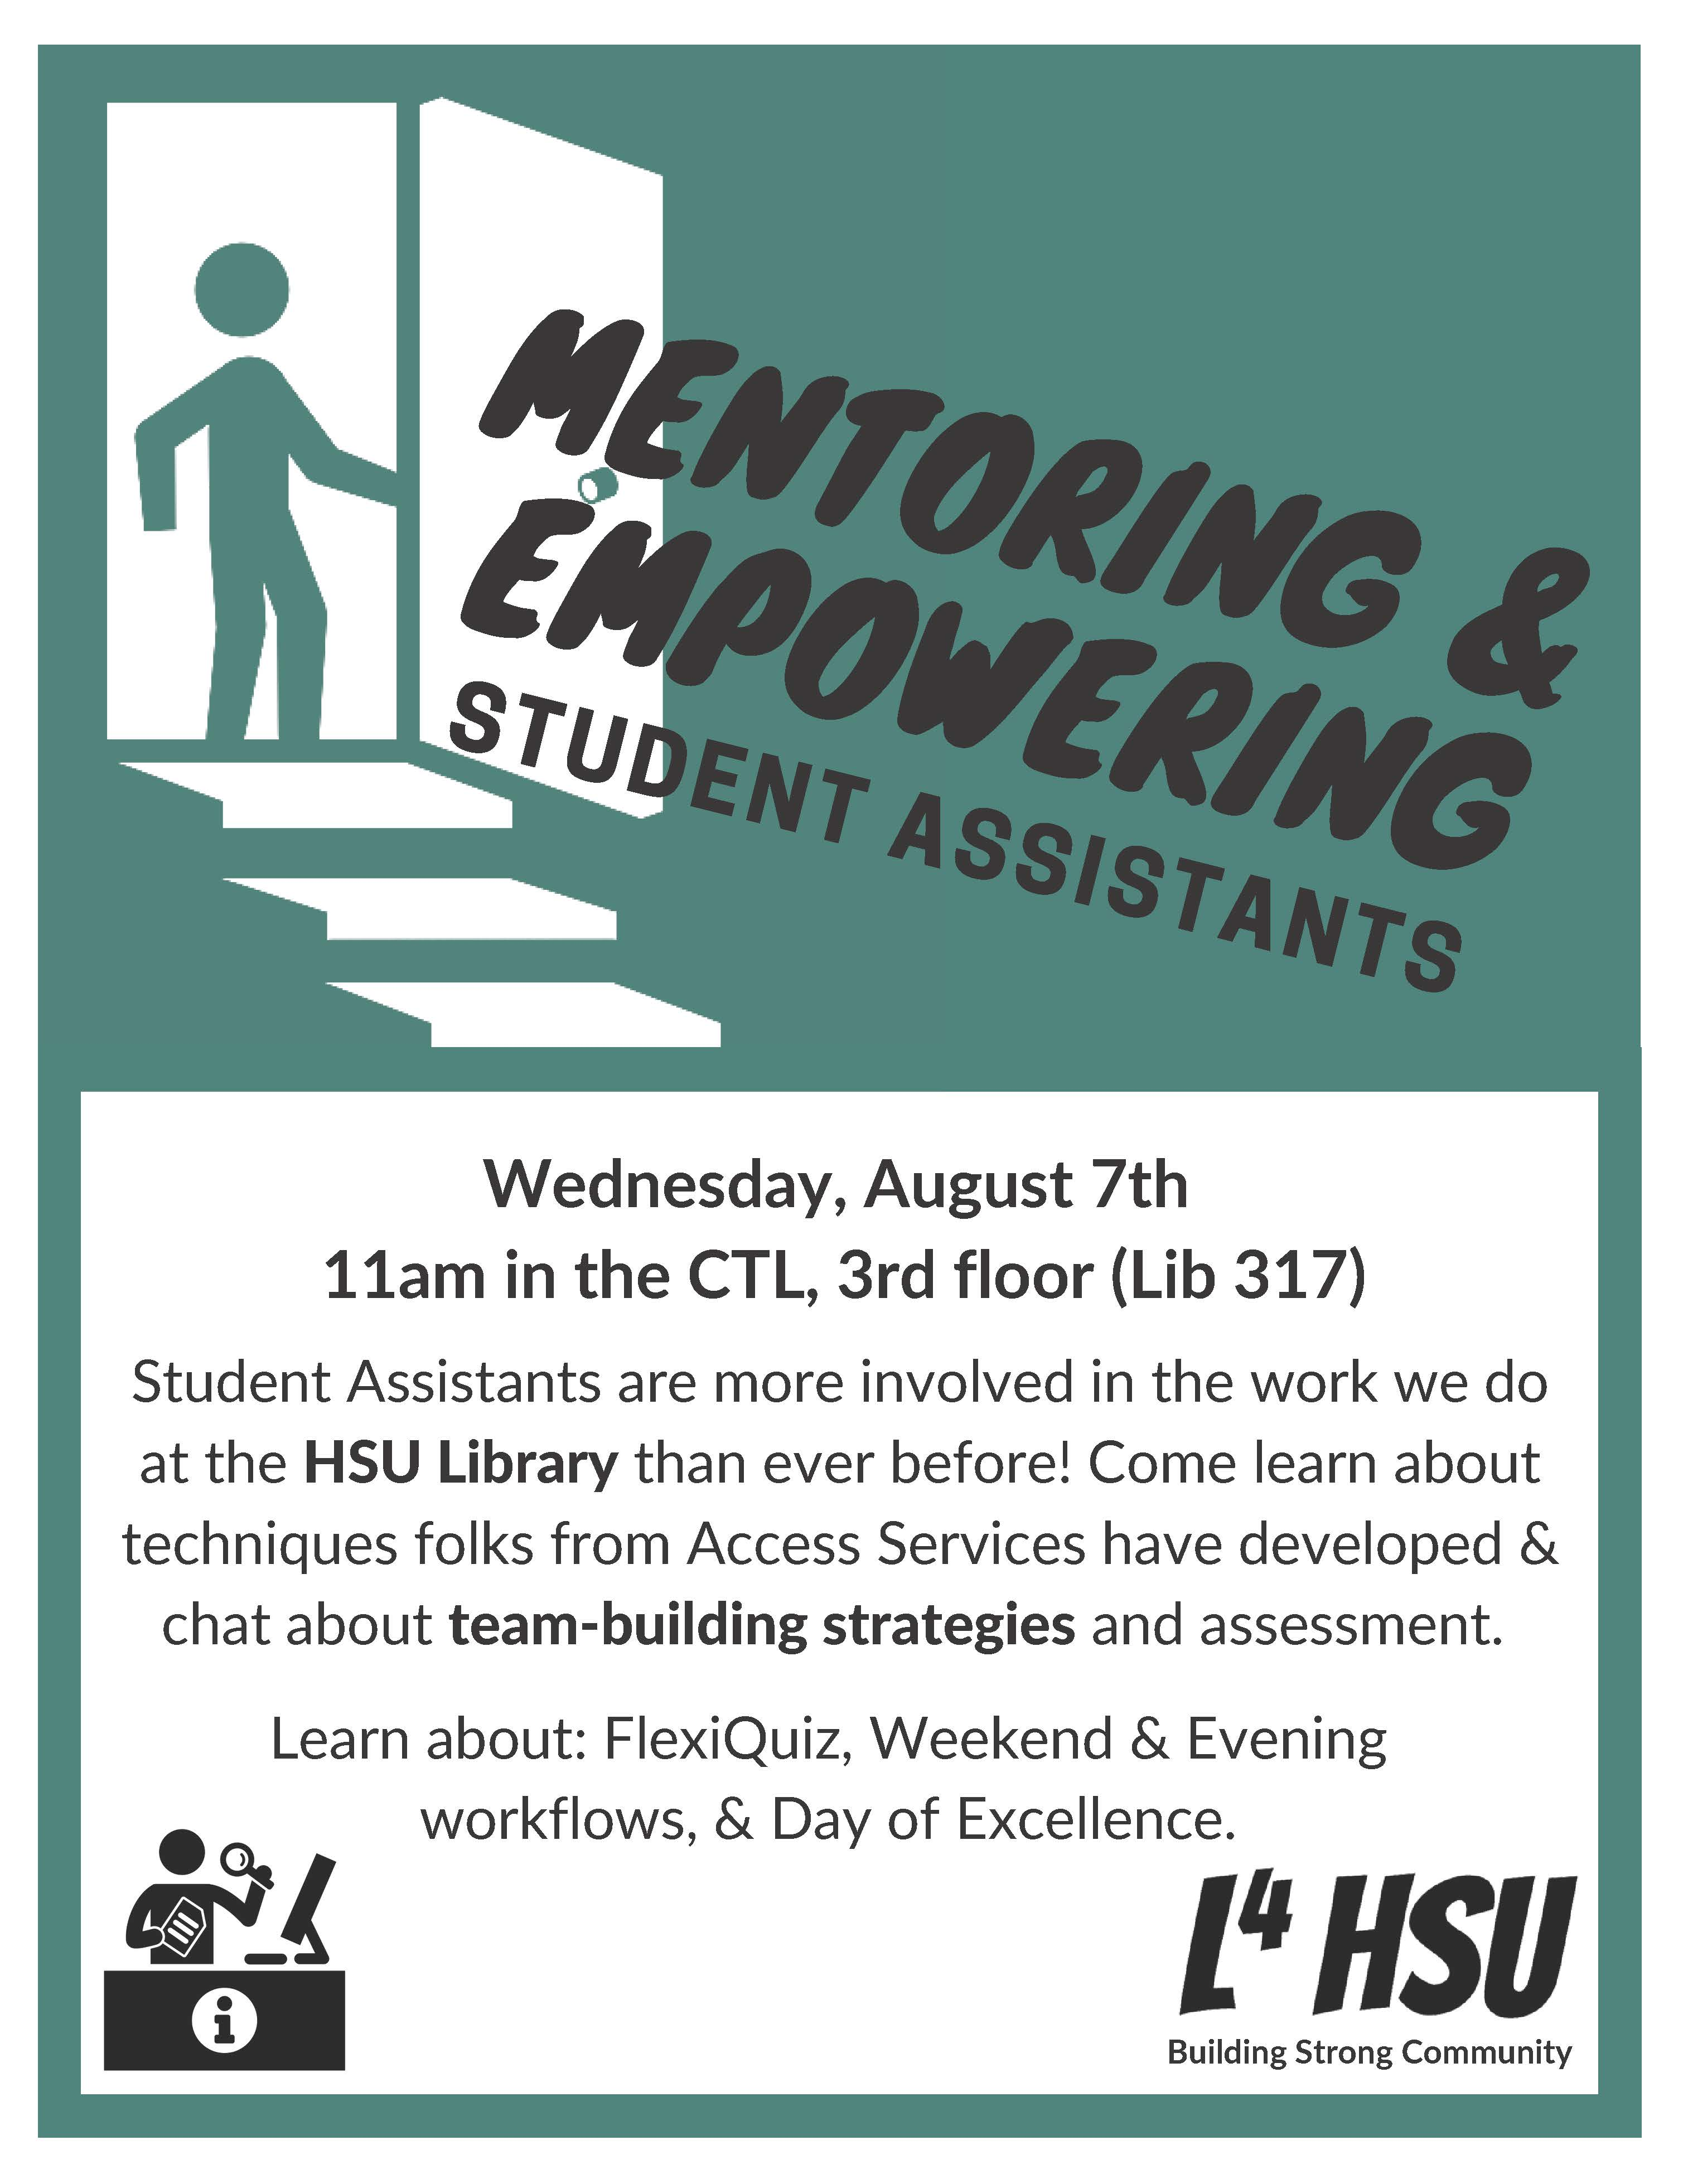 Mentoring & Empowering Student Assistants